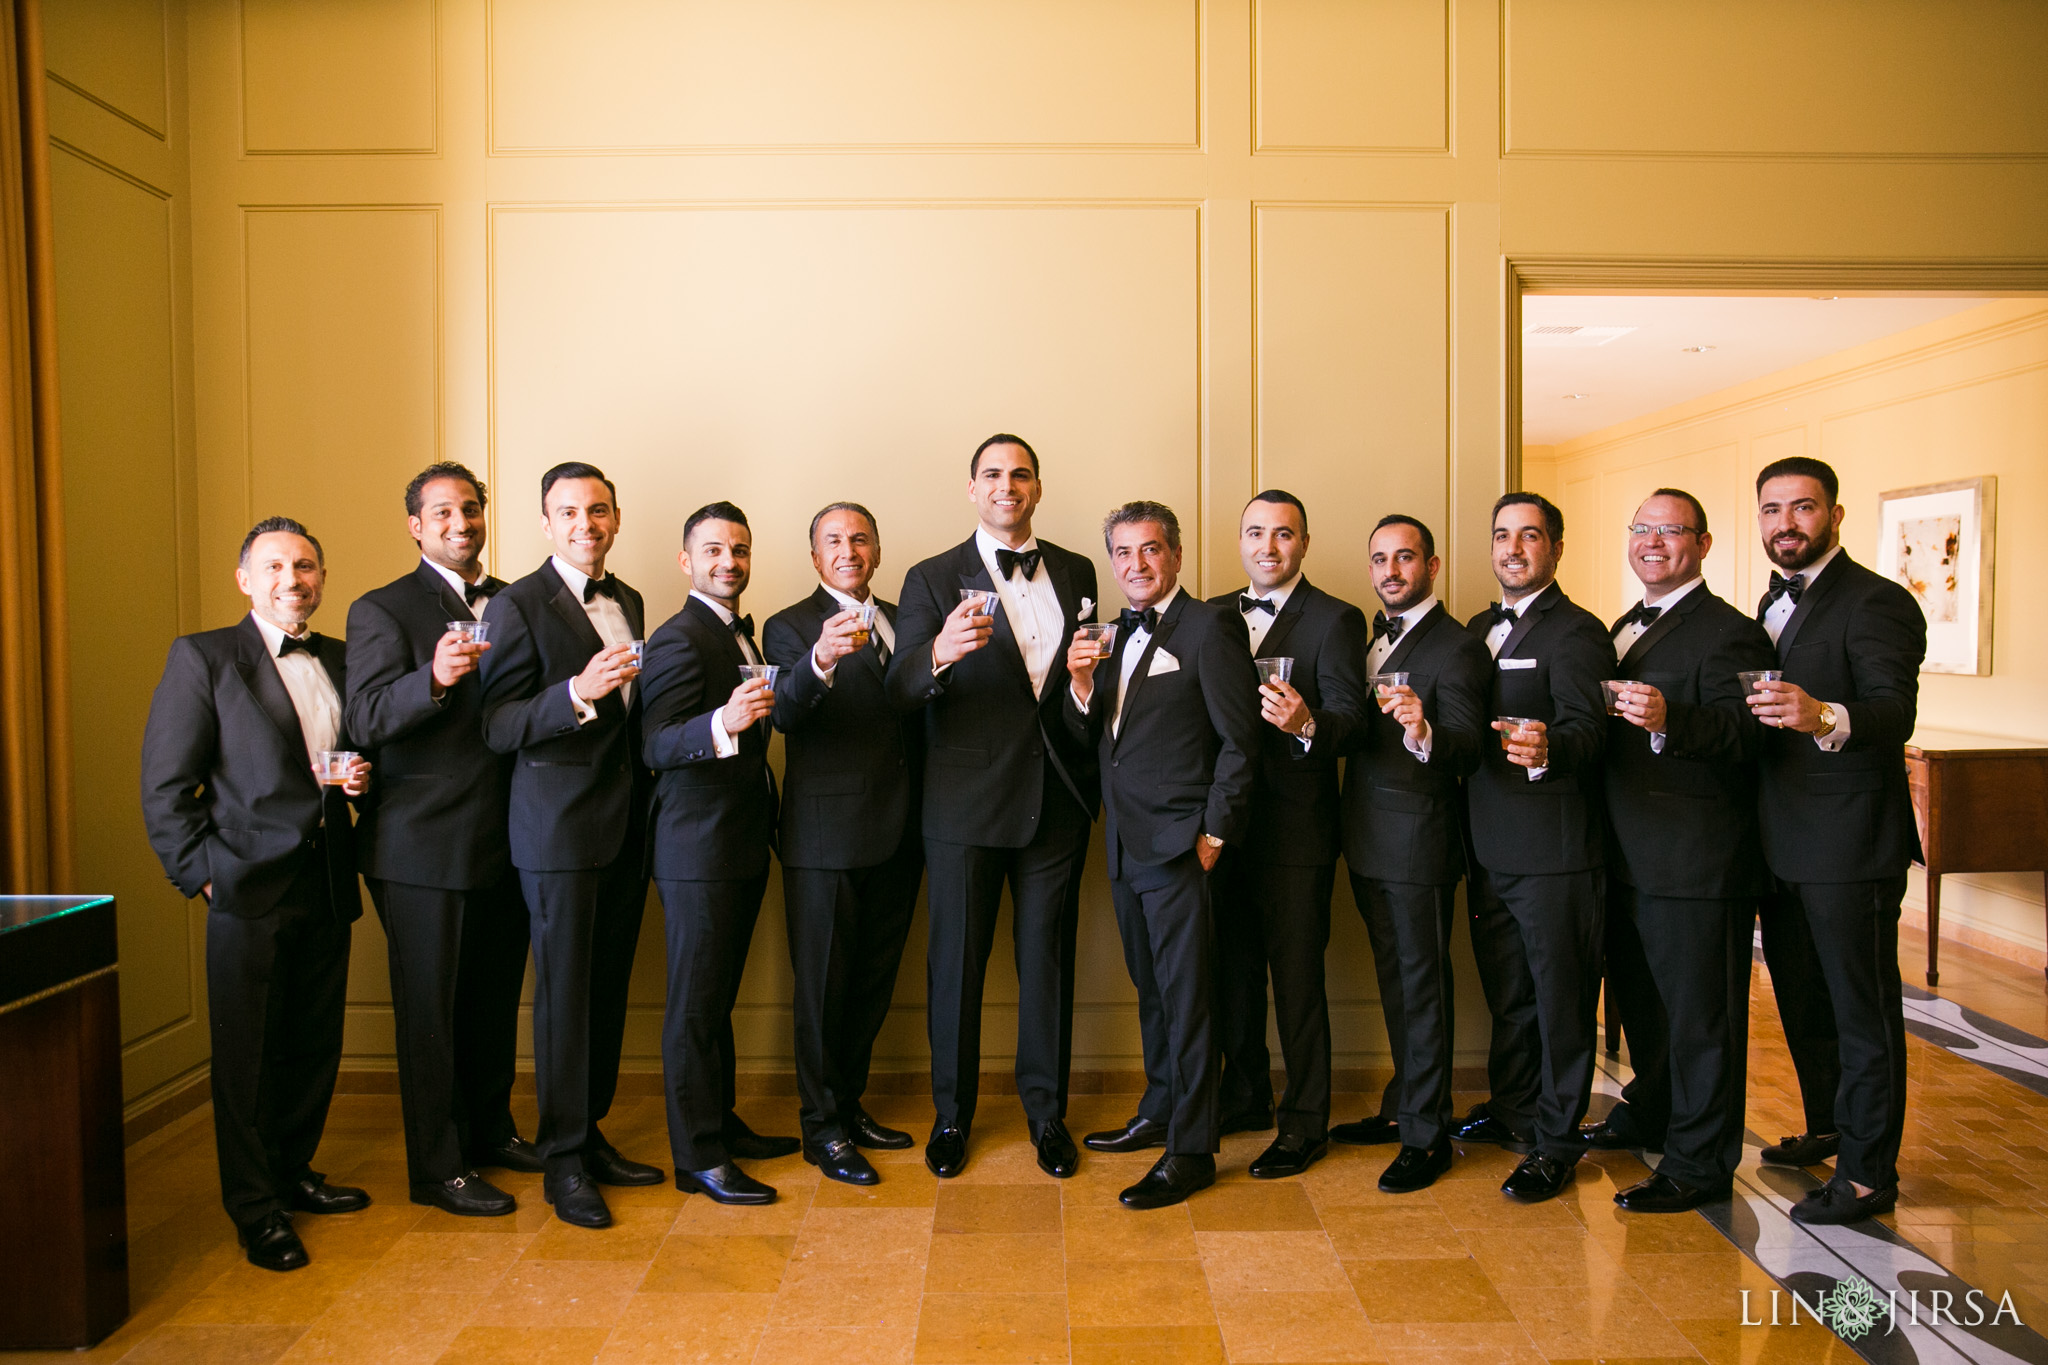 08 ritz carlton laguna niguel persian groomsmen wedding photography